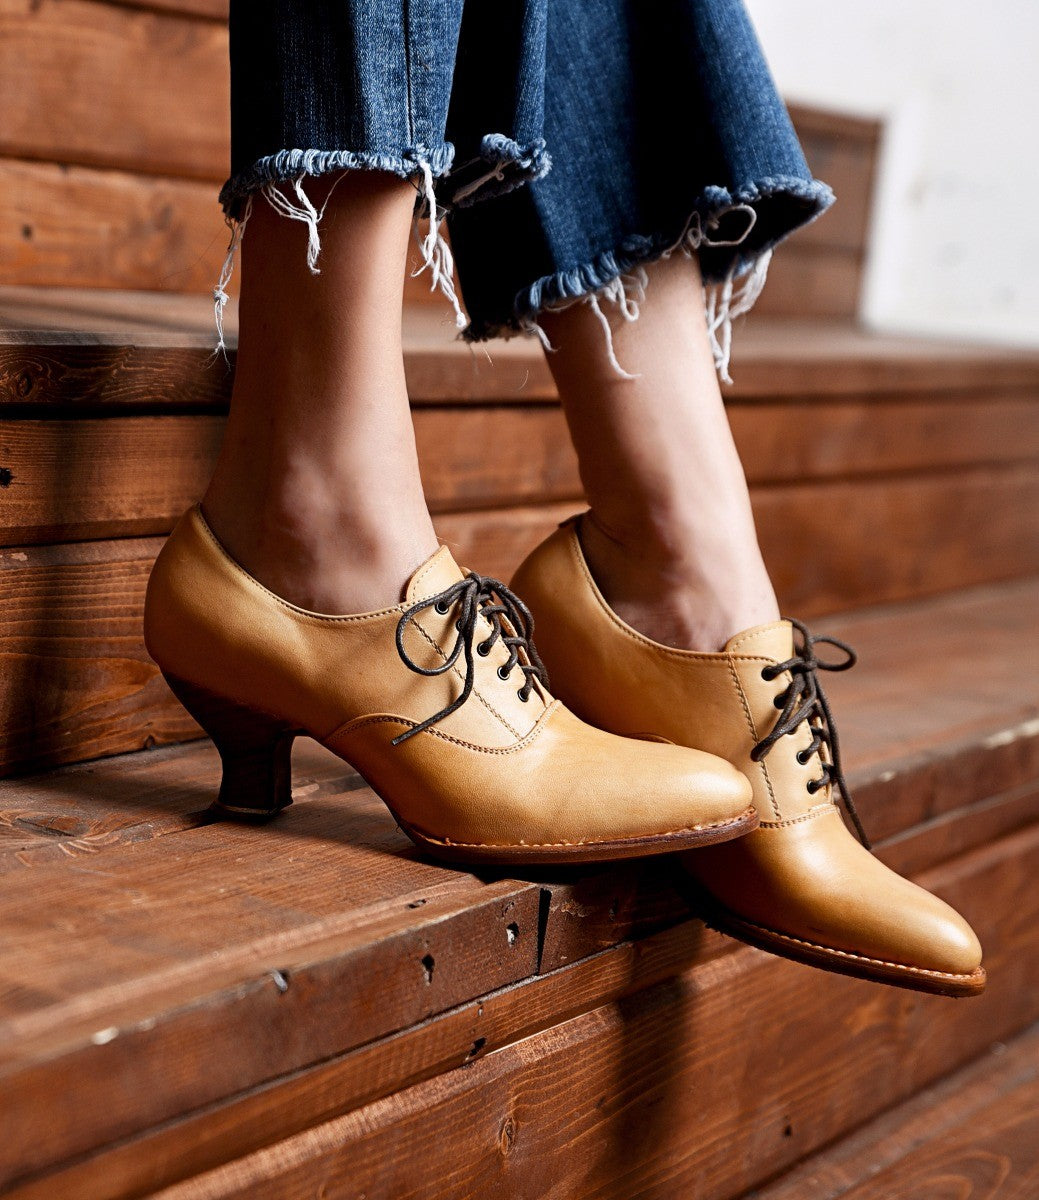 Vintage Shoes, Vintage Style Shoes Victorian Style Leather Lace-Up Shoes in Natural Rustic $195.00 AT vintagedancer.com